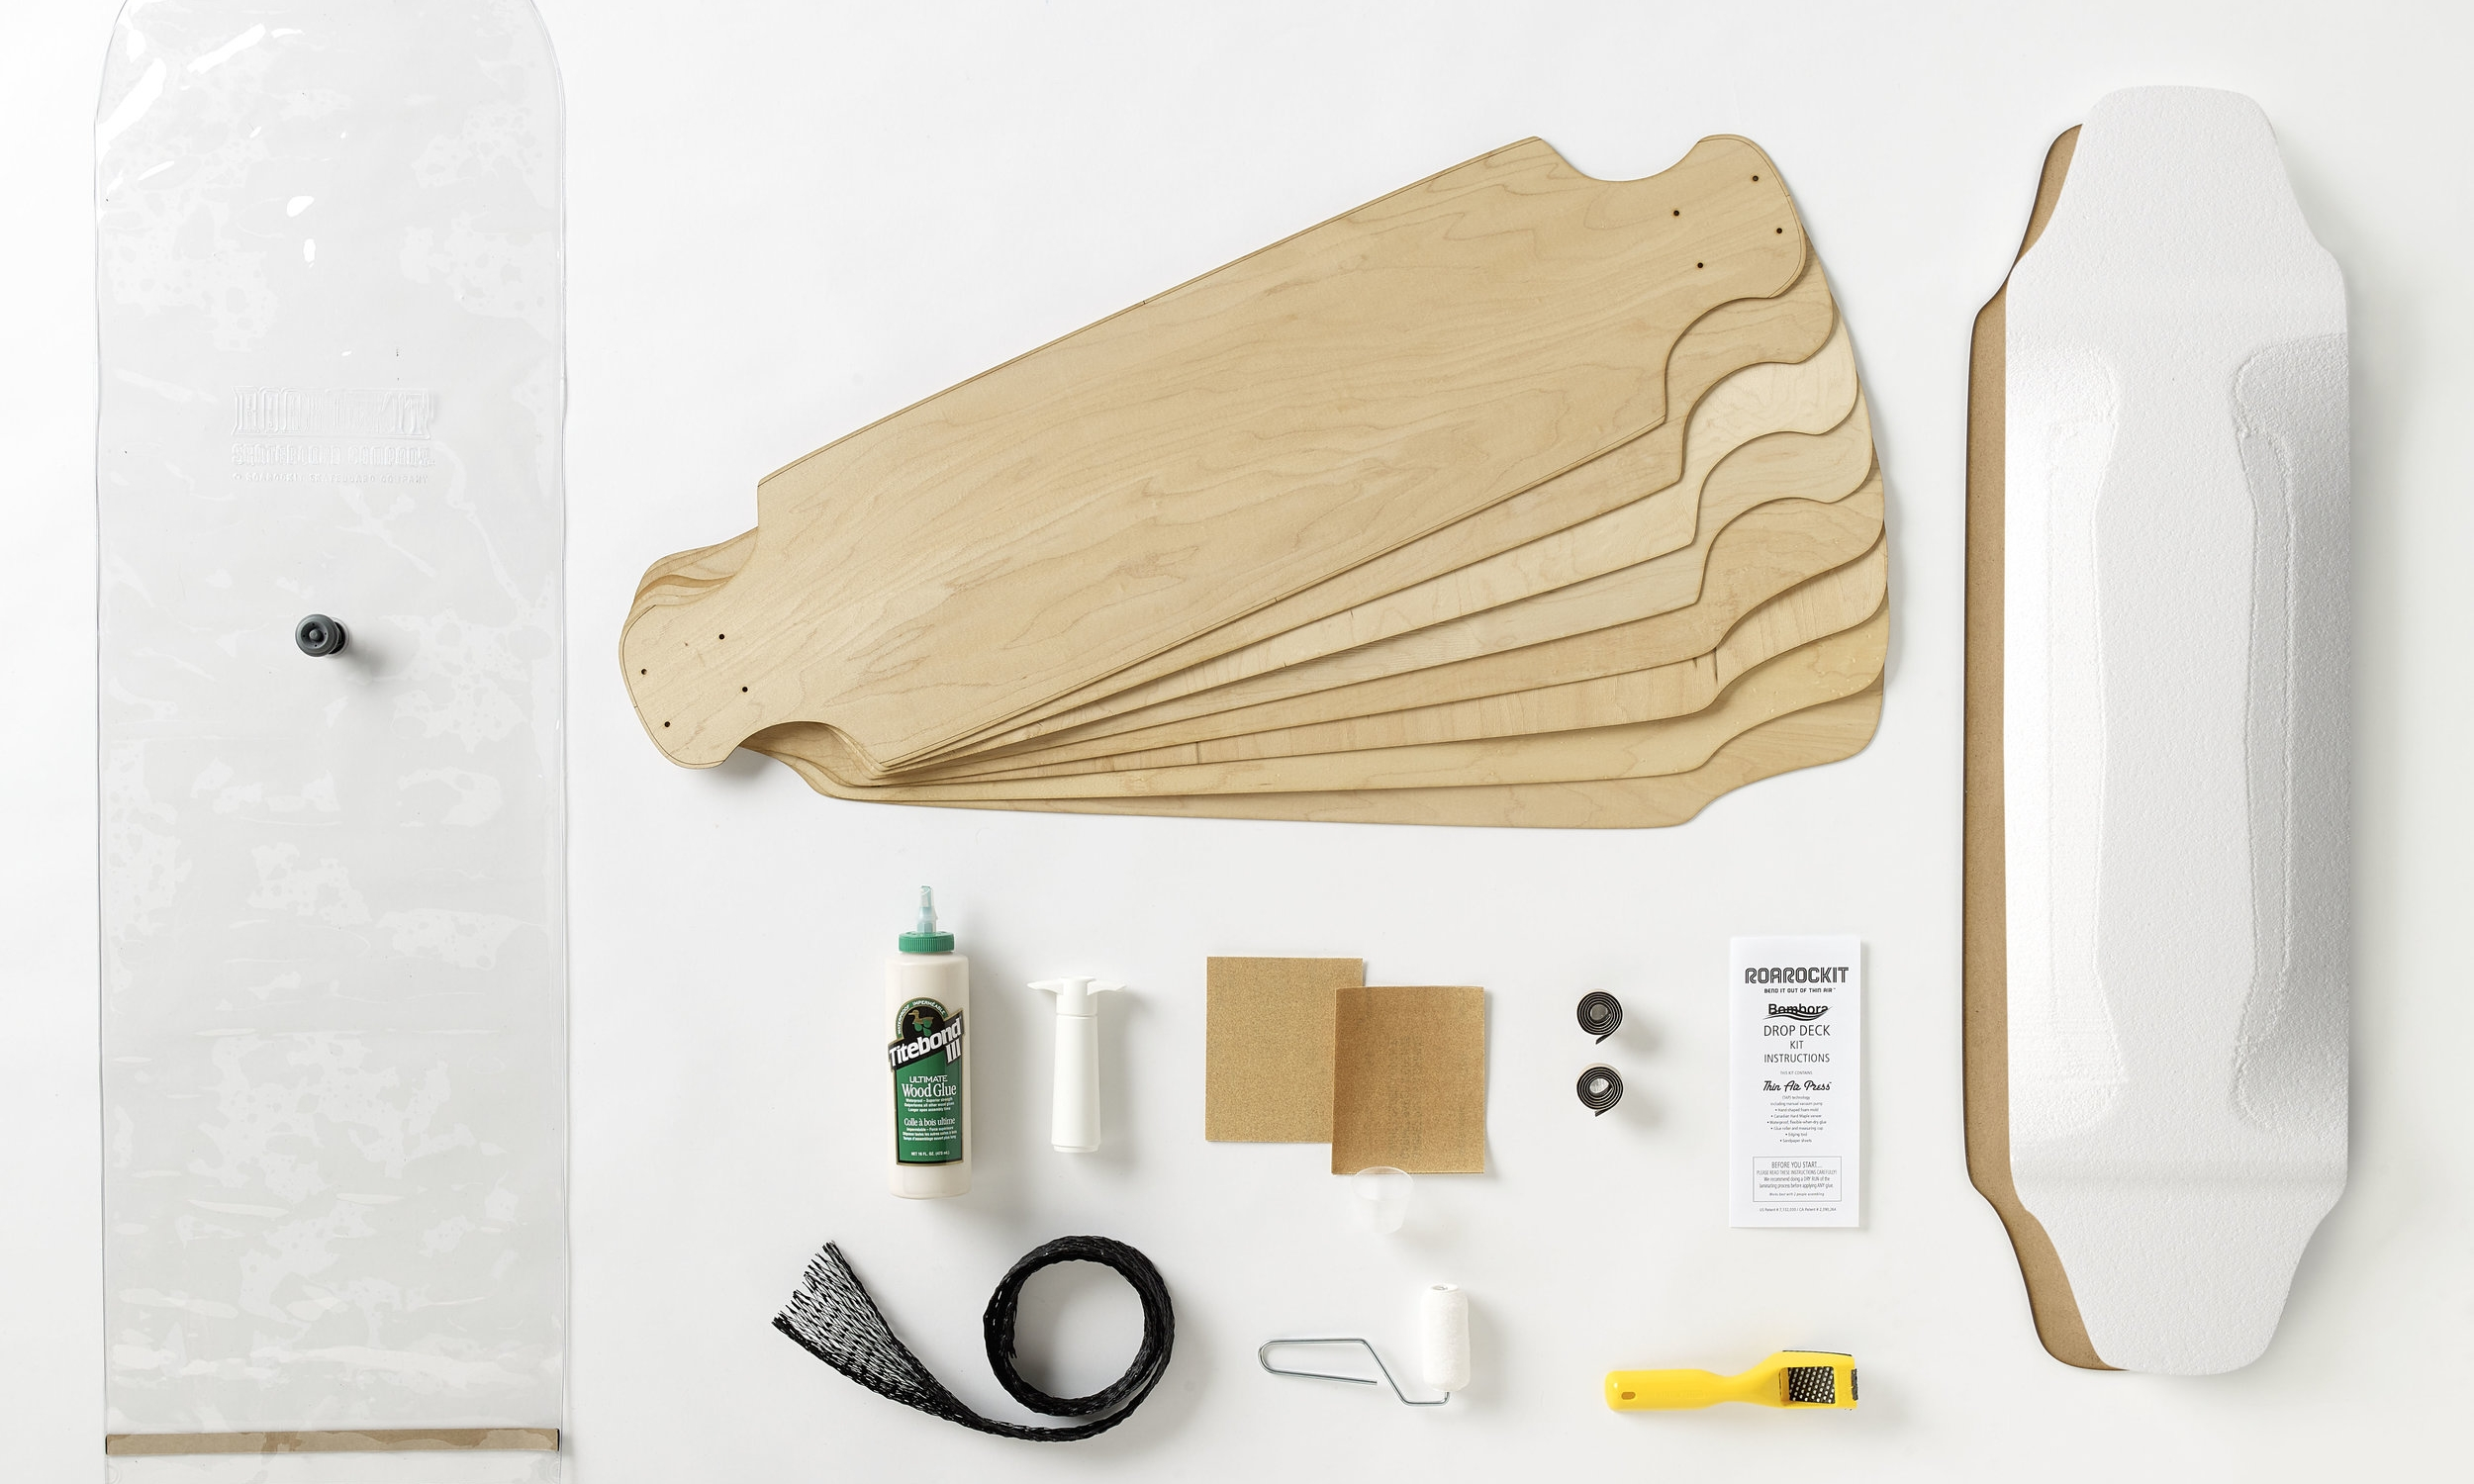 Drop Deck Kit - This kit contains everything you need to press one full drop deck. Most of the items in the kit are reusable so if you want to build another board all you would need is a refill on veneers and glue.